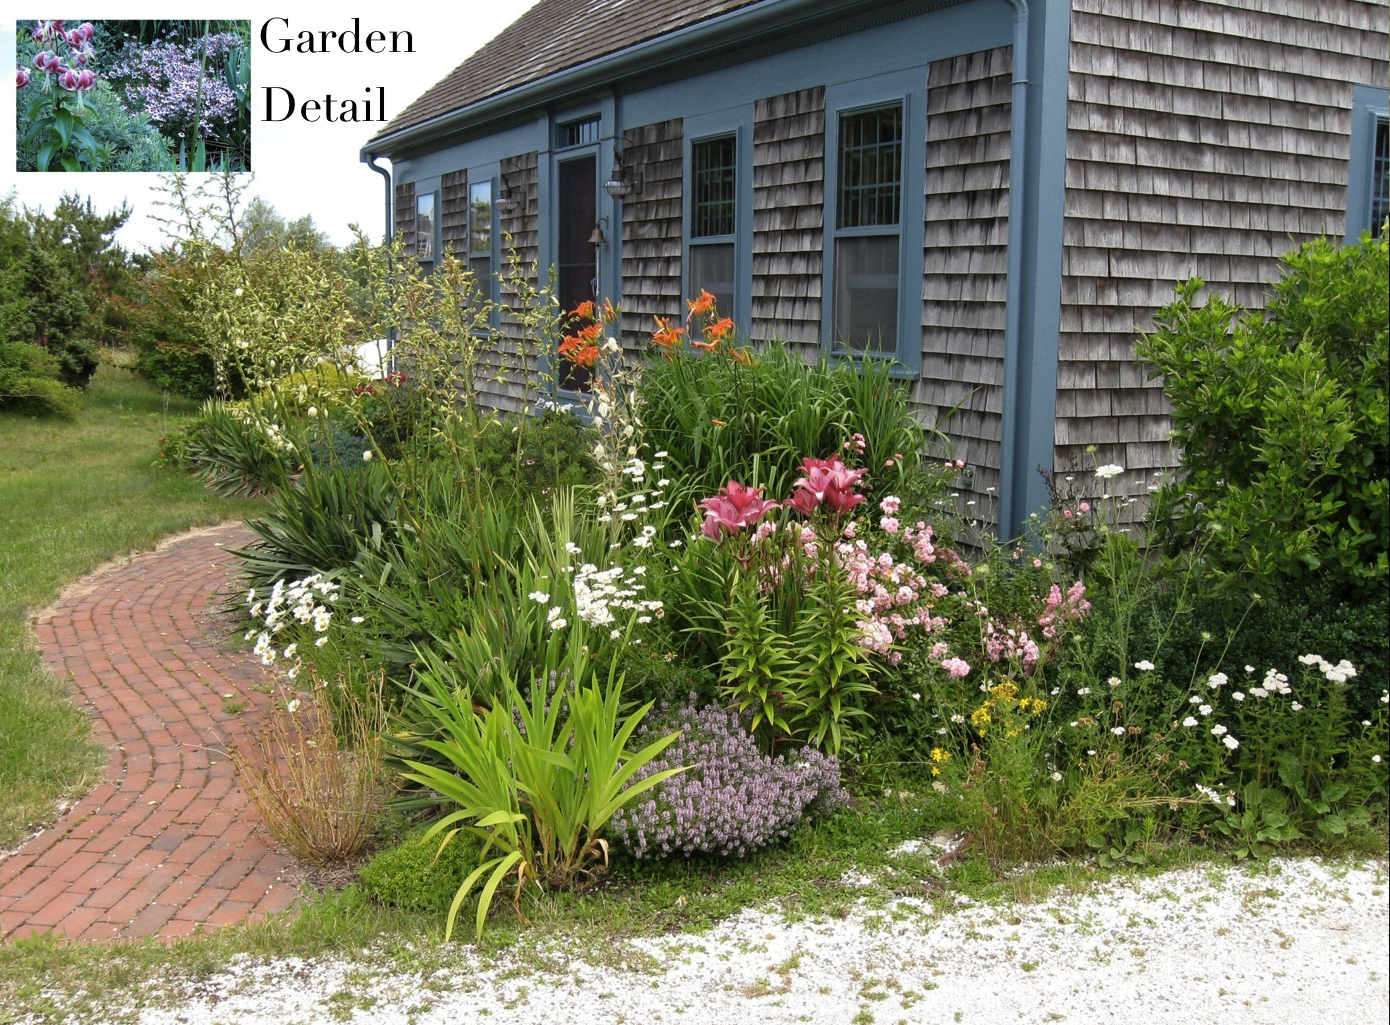 Cape cod historic homes blog gardening with native for Garden design blogs